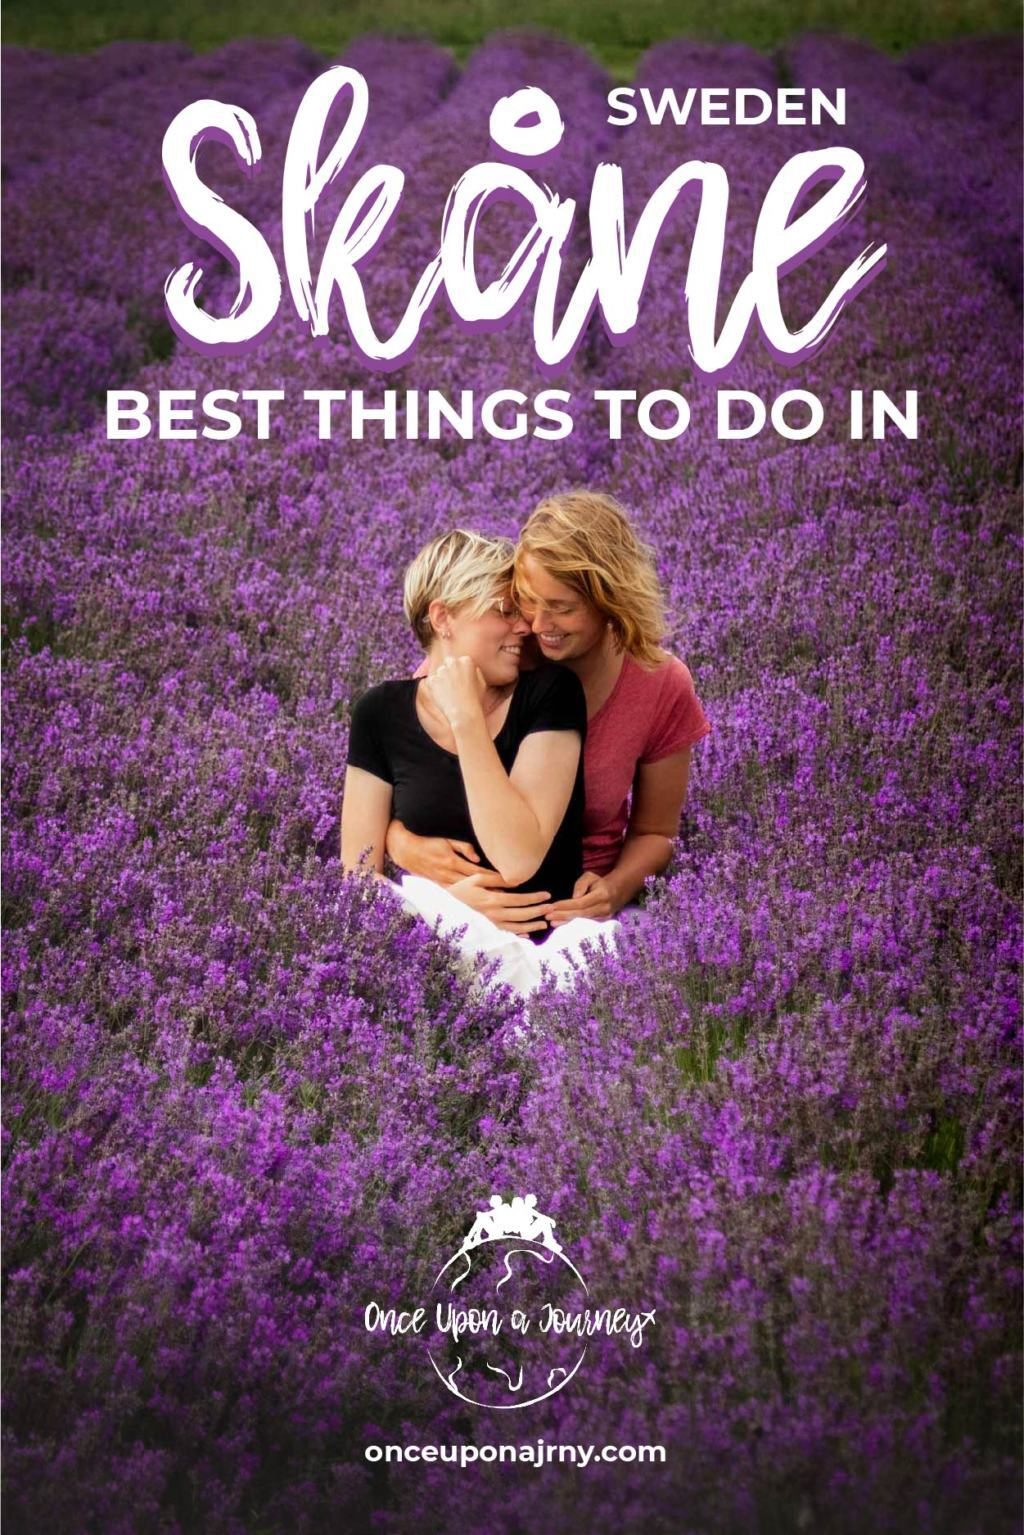 Best Things to Do in Skåne Sweden